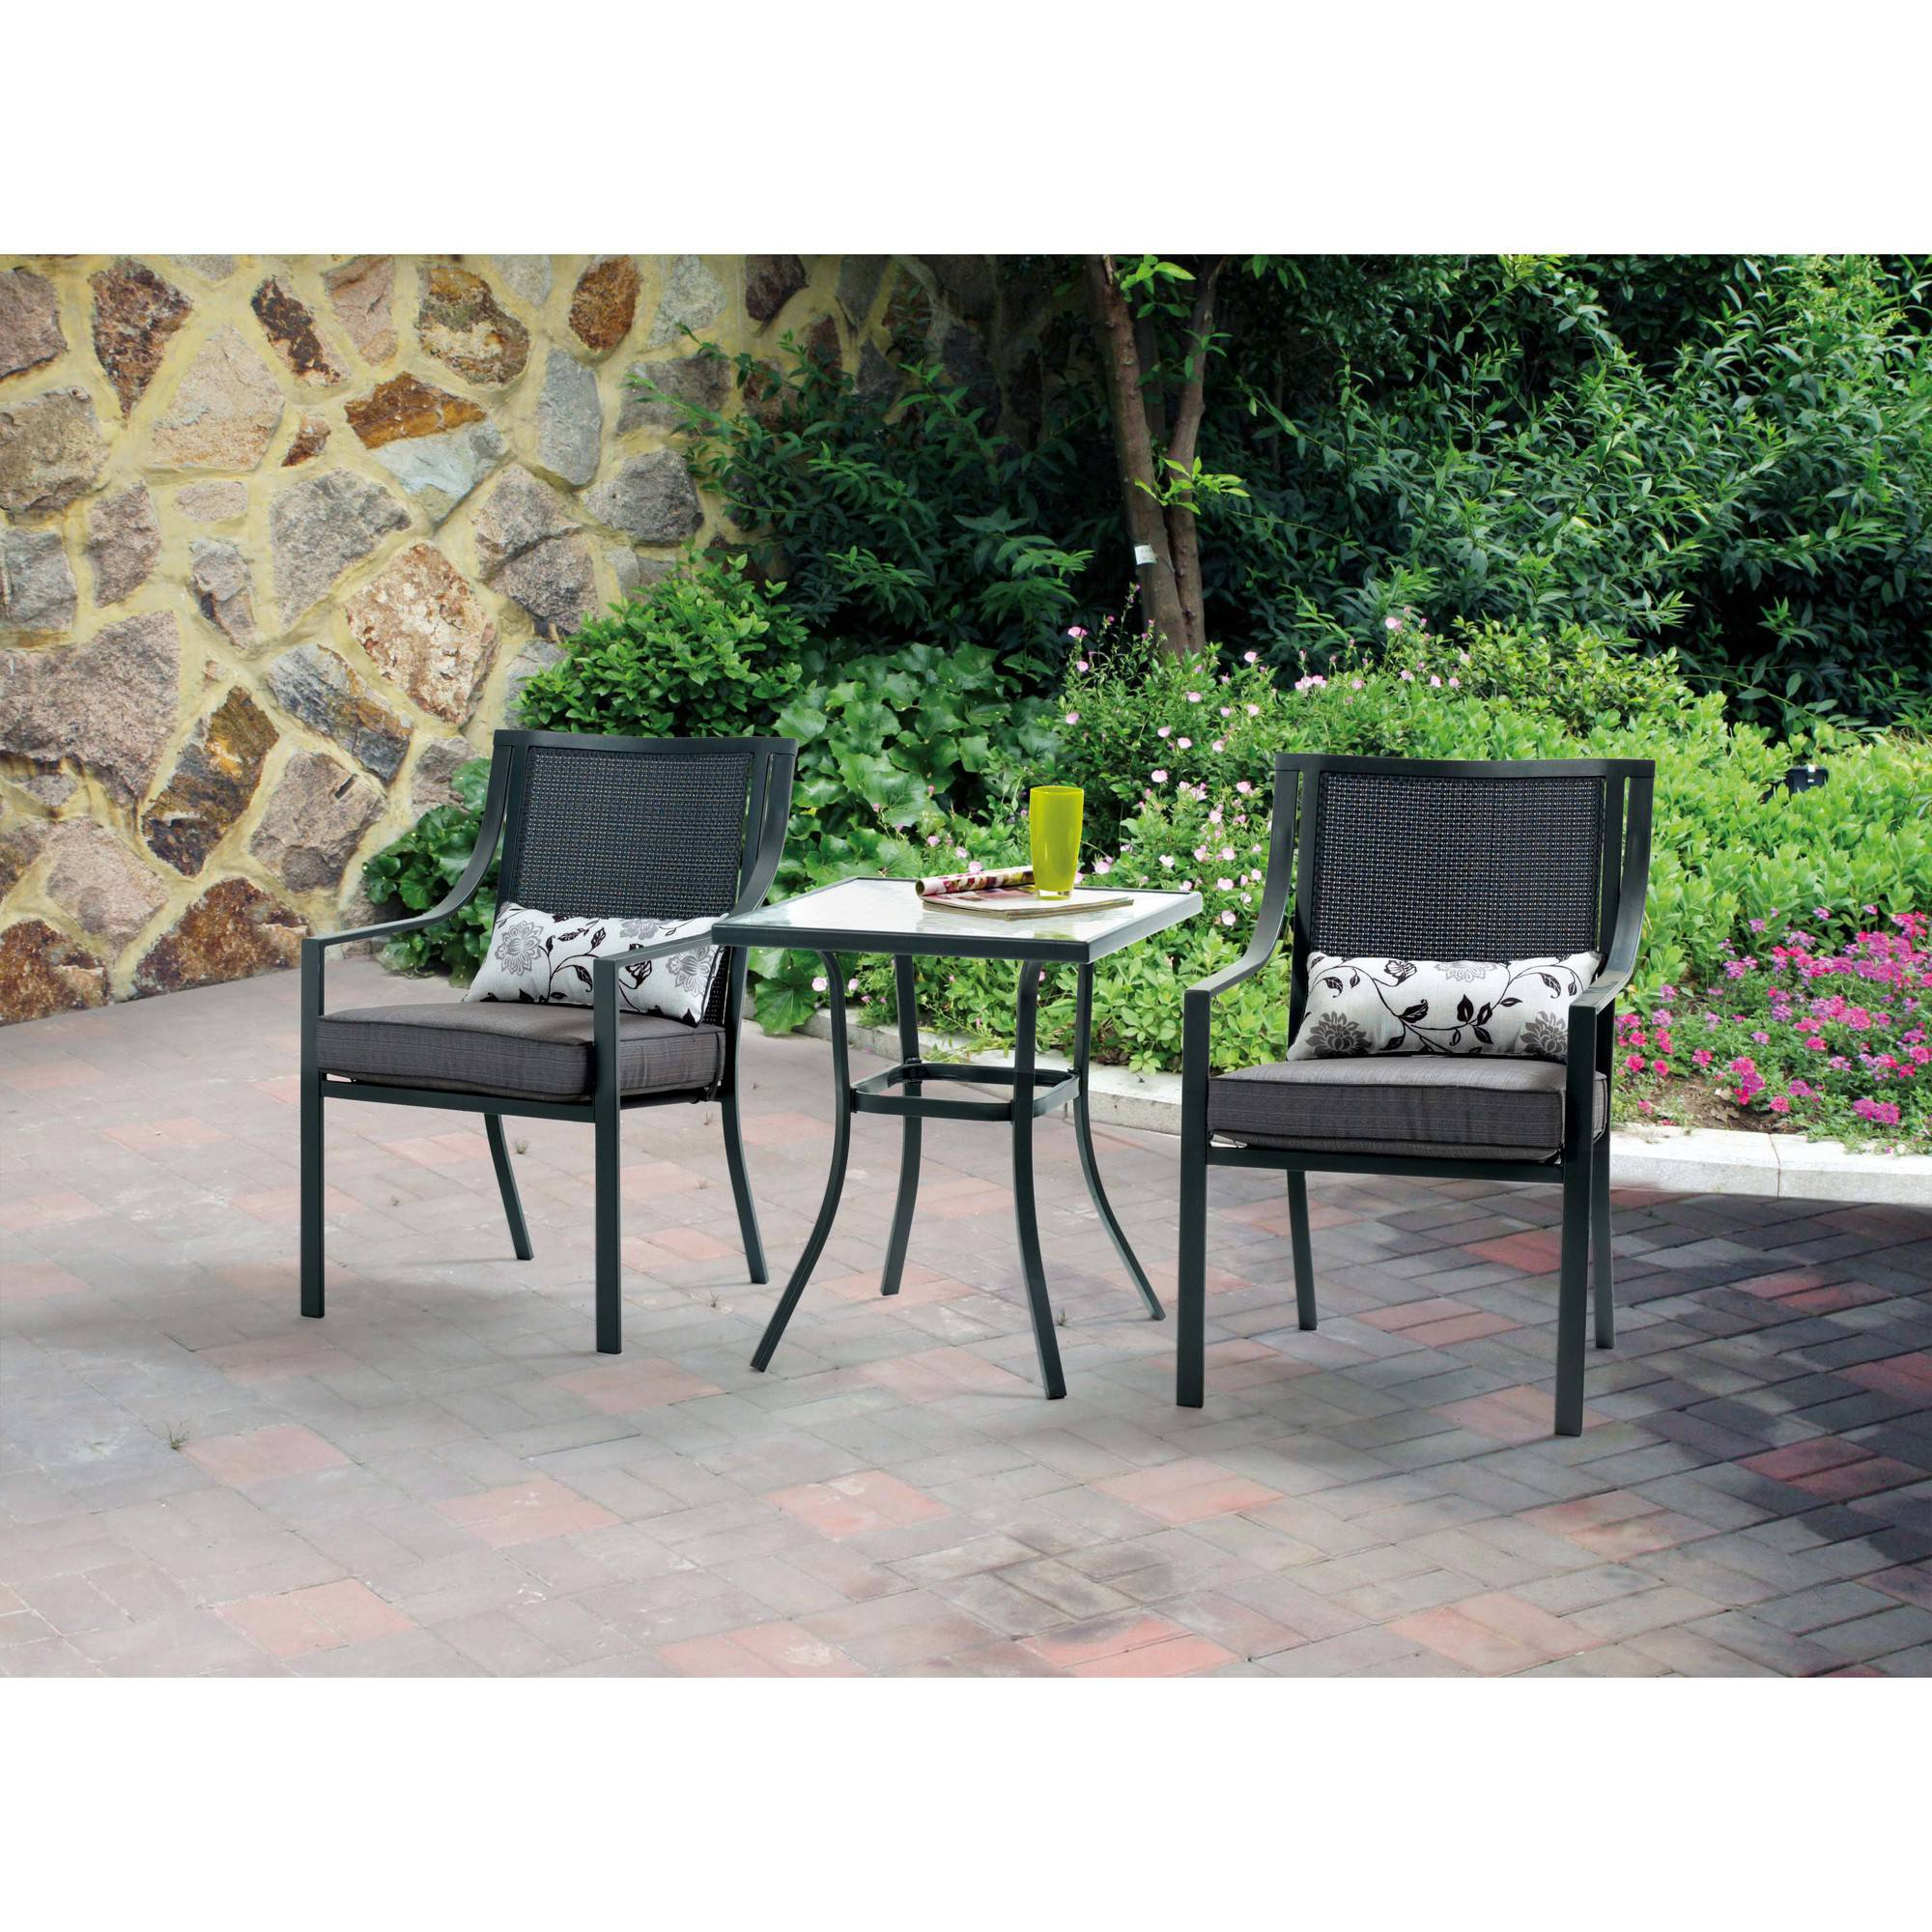 Mainstays Wesley Creek 3-Piece Bistro Set with Swivel Chairs - Walmart.com  sc 1 st  Walmart & Mainstays Wesley Creek 3-Piece Bistro Set with Swivel Chairs ...